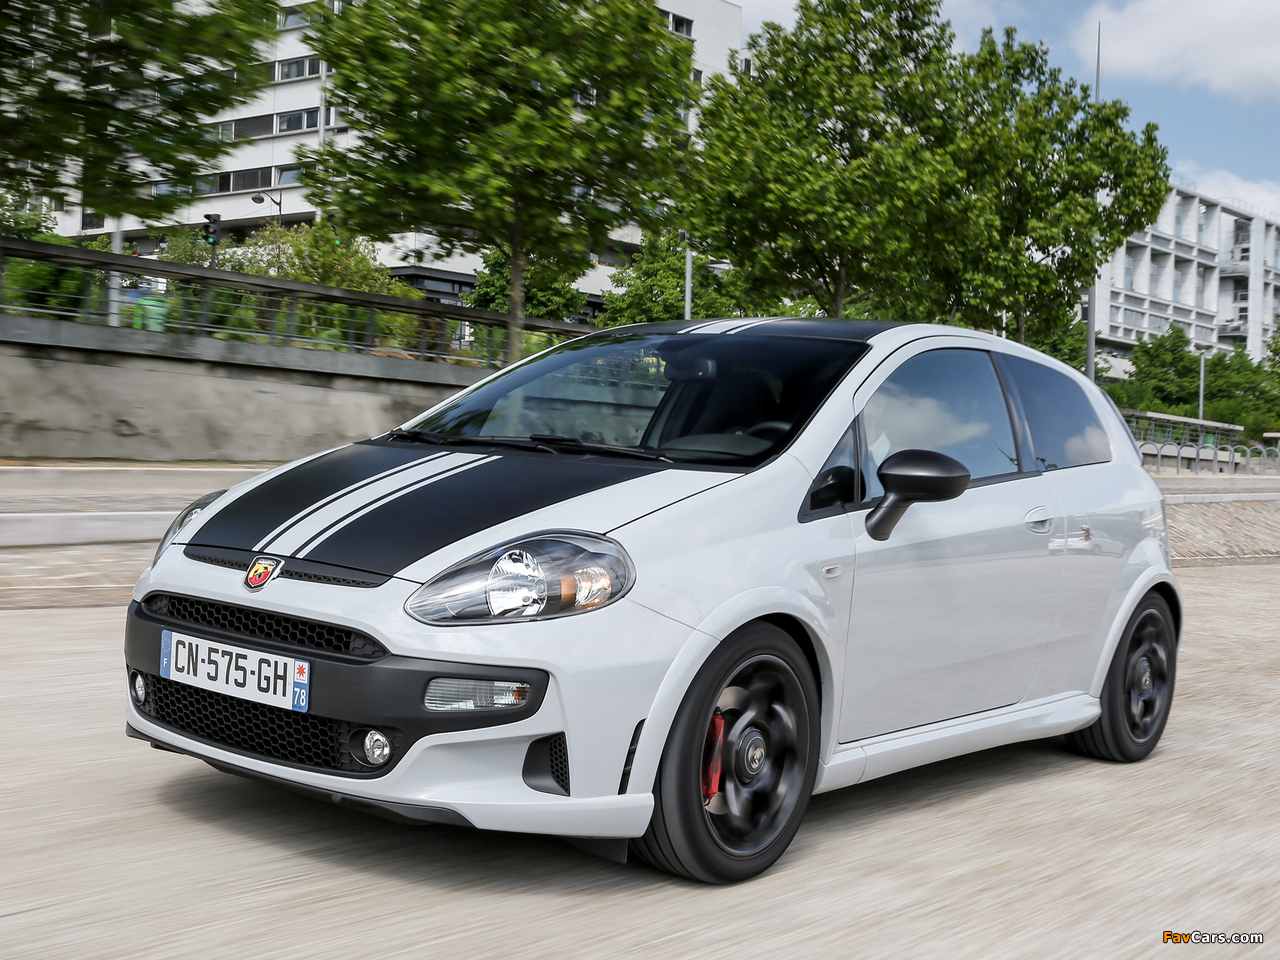 Abarth Punto SuperSport 199 (2012) wallpapers (1280 x 960)